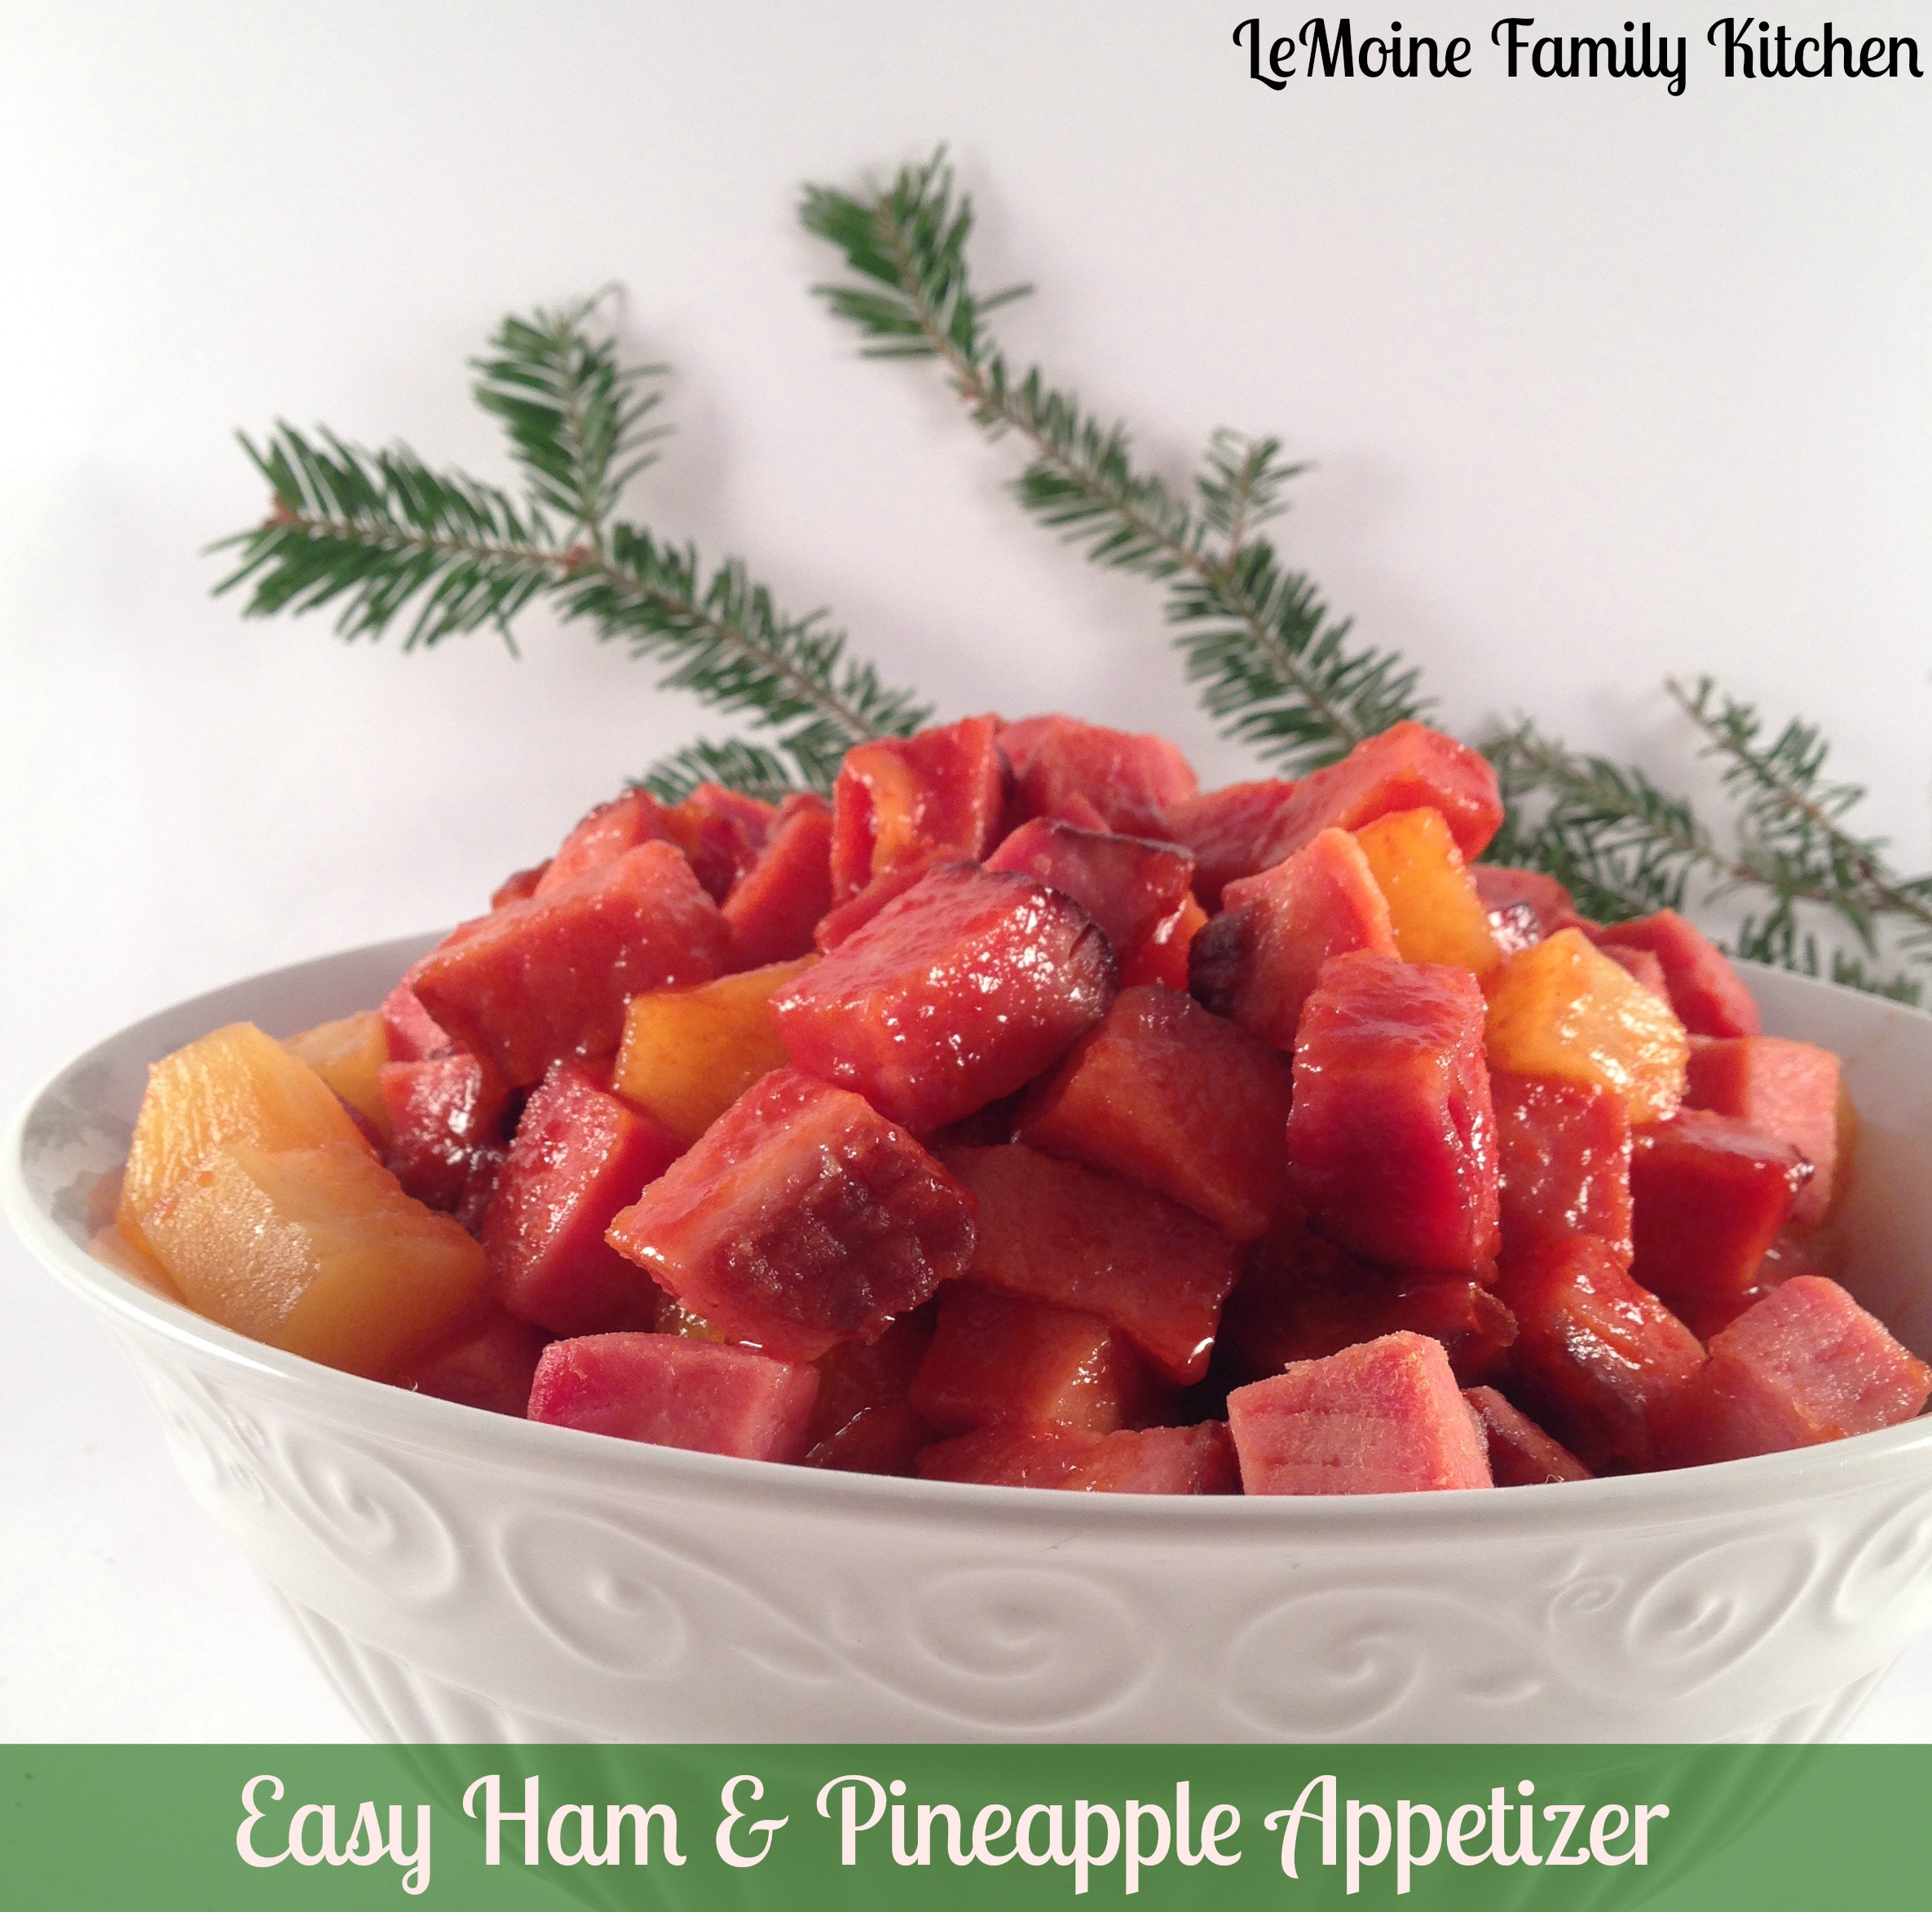 Easy Ham & Pineapple Appetizer